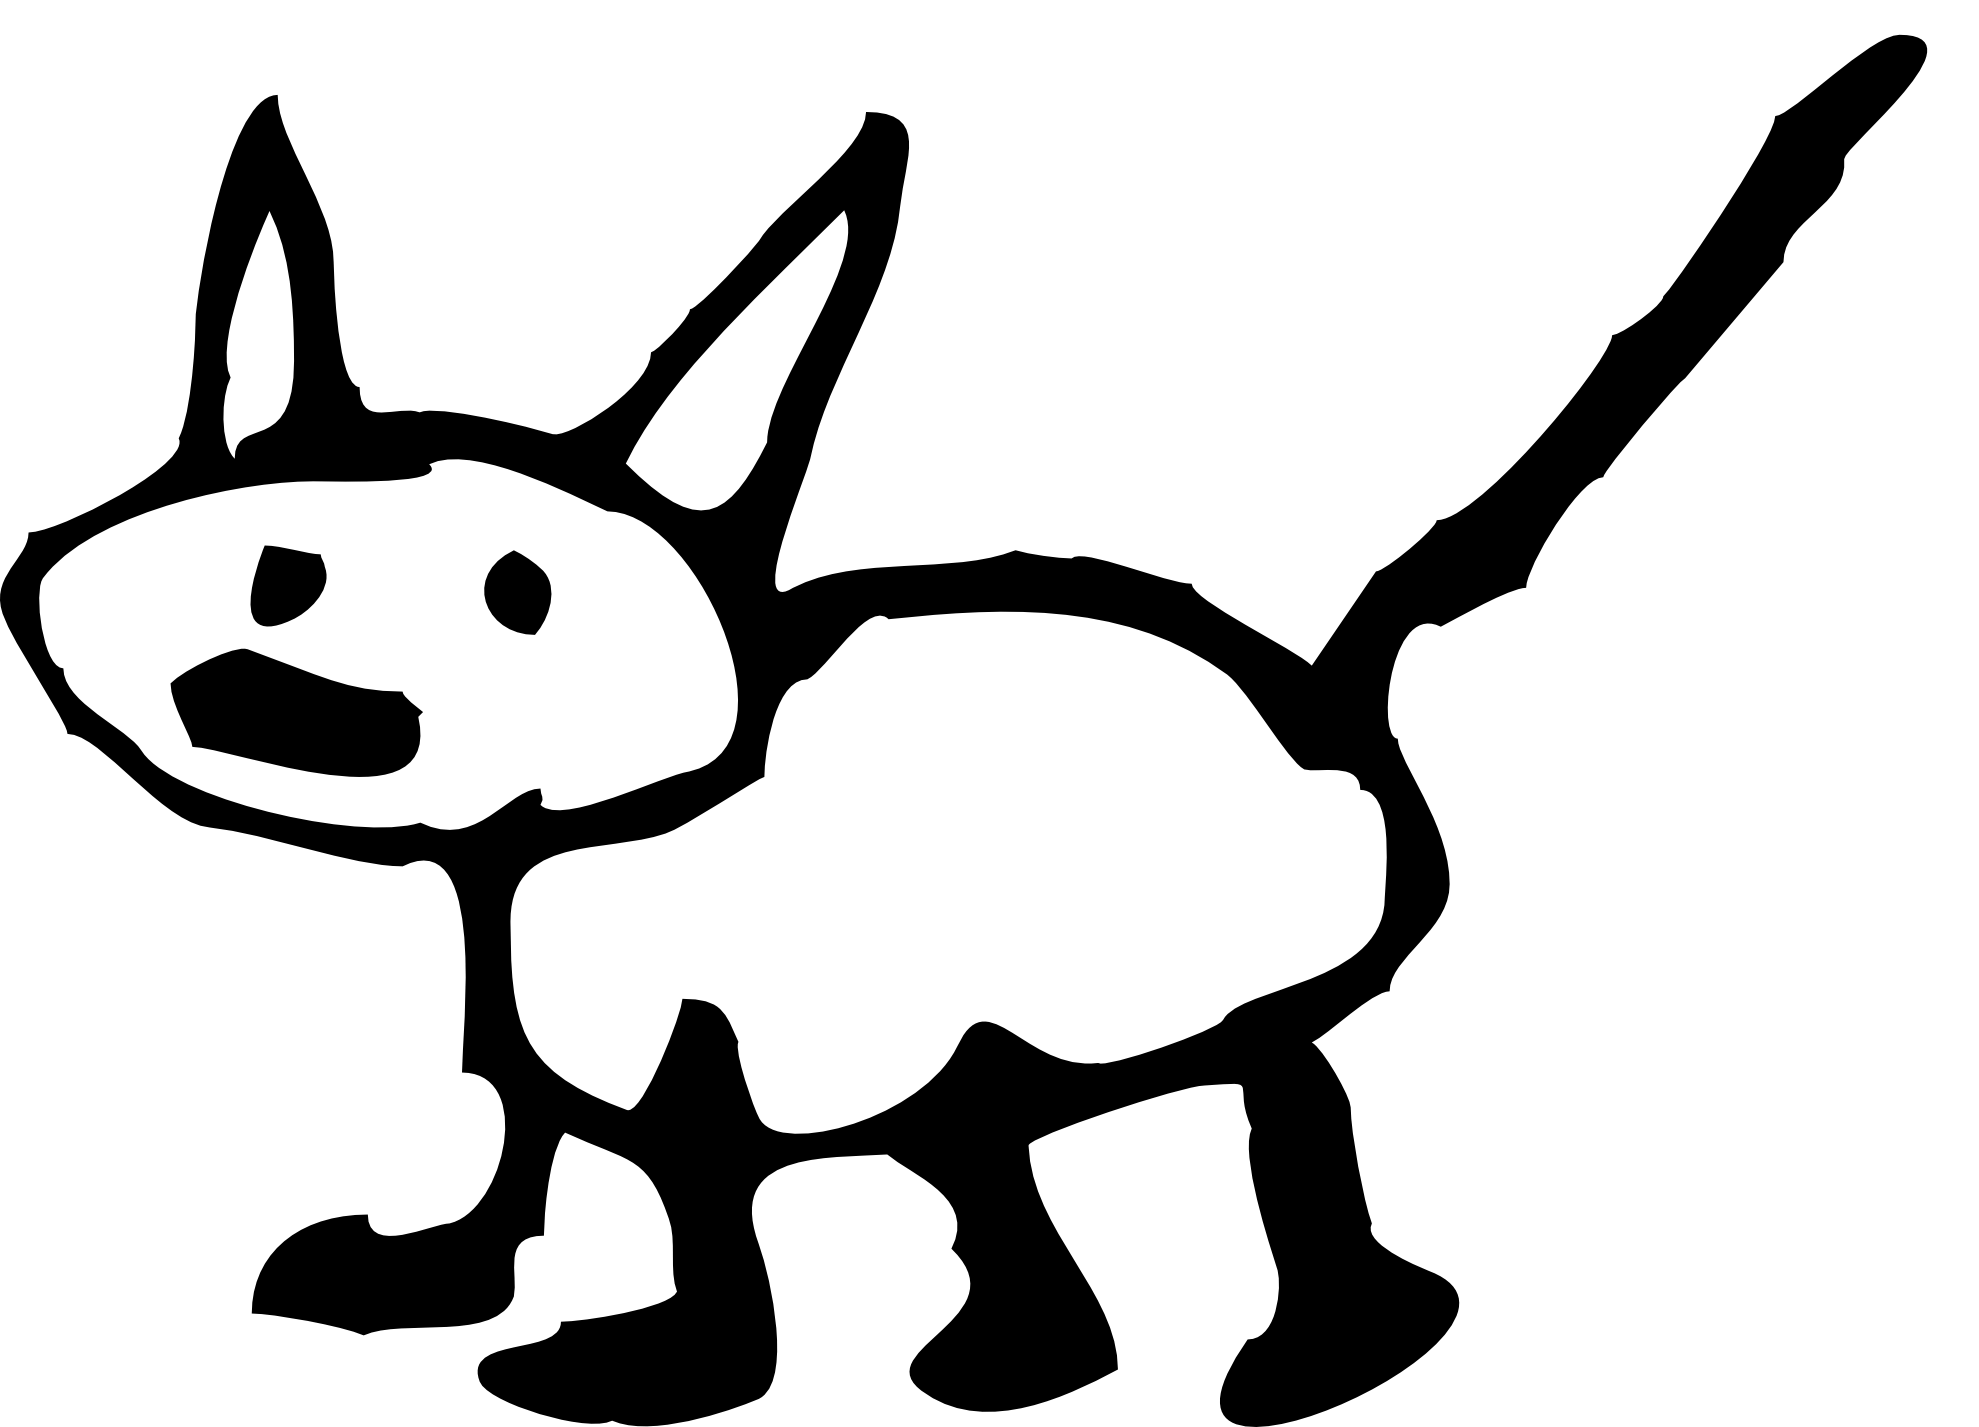 Kangaroo Clipart Black And White Clipart Panda